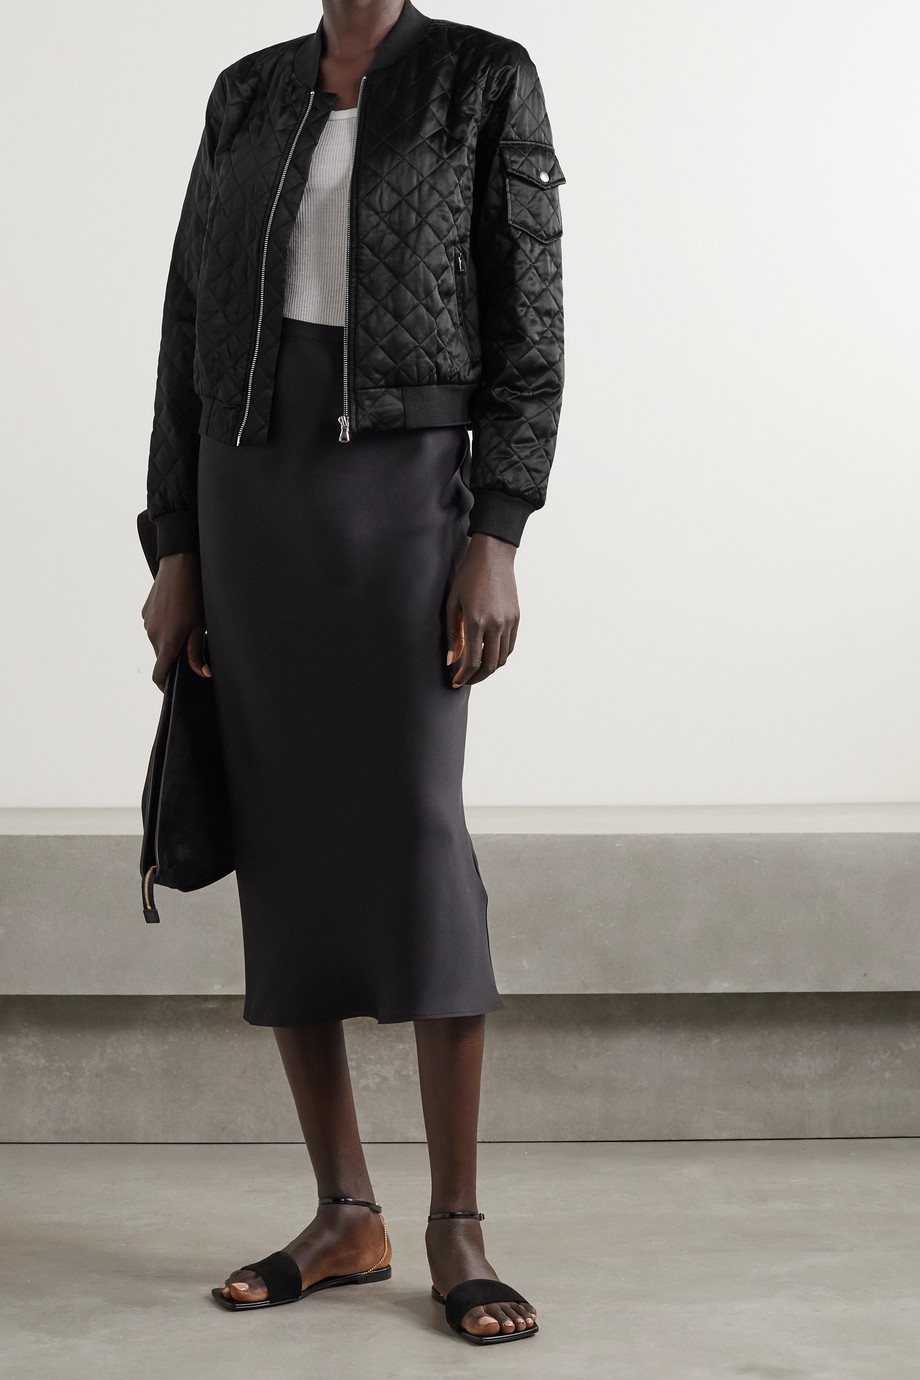 Cami NYC Dierdre quilted silk-charmeuse bomber jacket